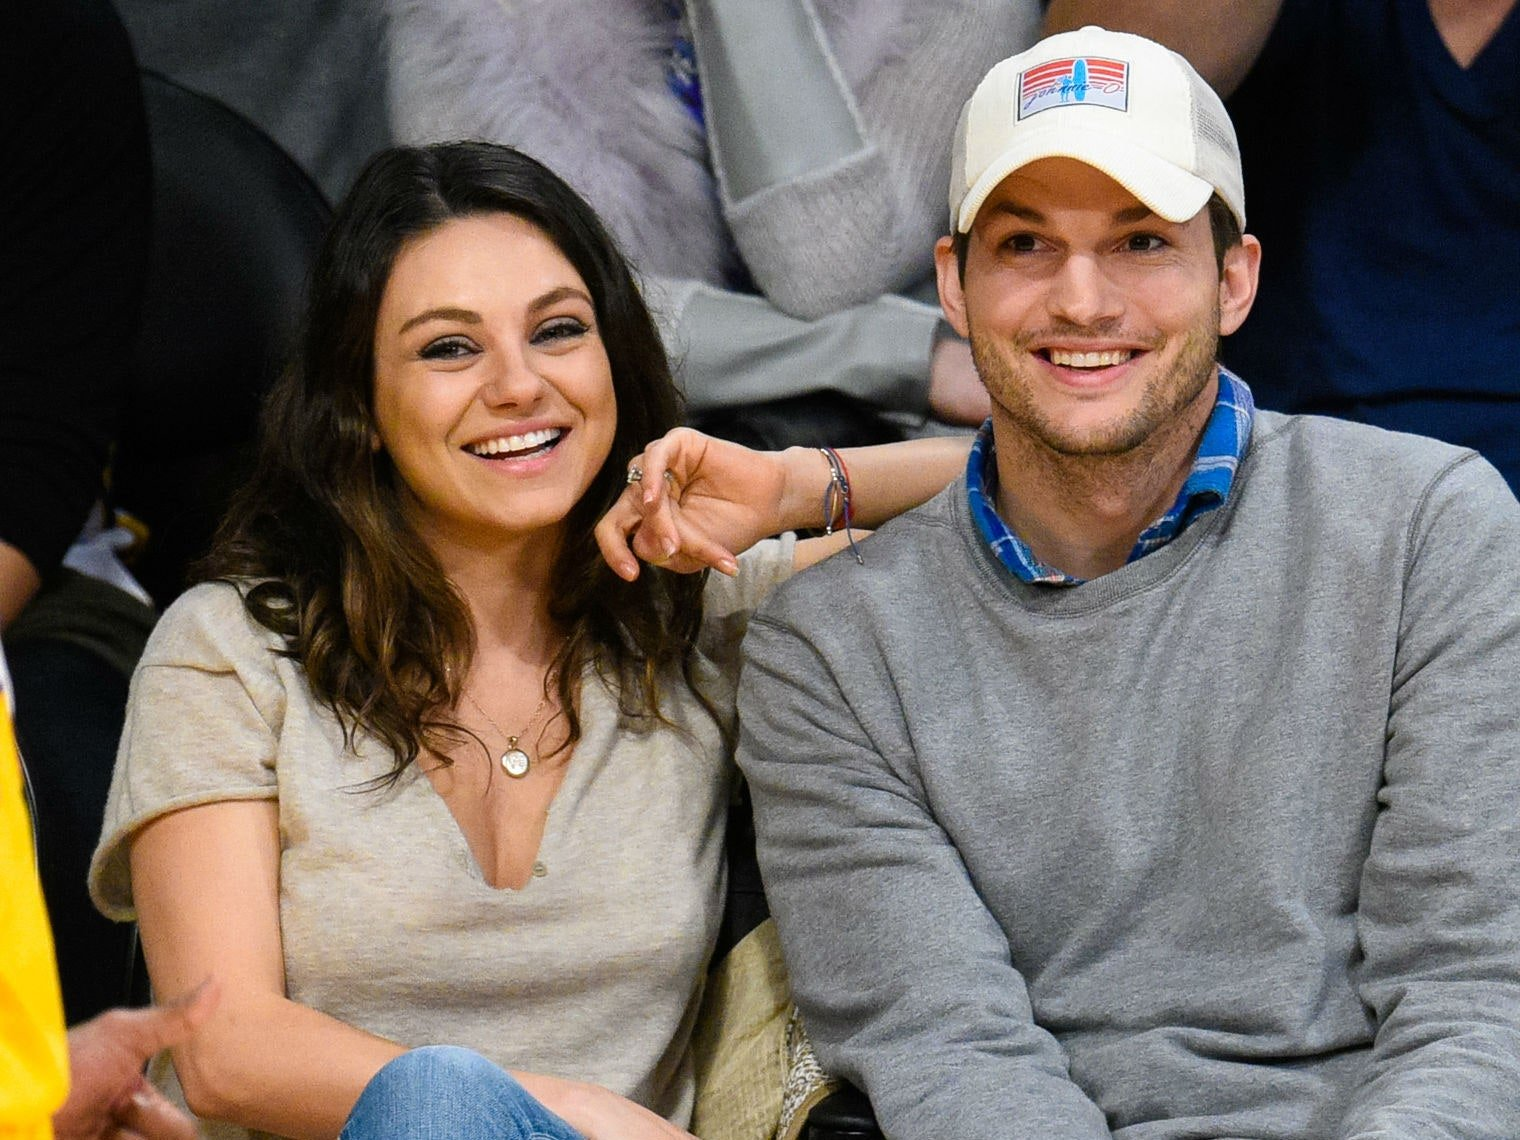 Mila Kunis Surprised Ashton Kutcher And Their 2 Kids With A Drive-Thru 'Baby Rave' – Check Out The Story!